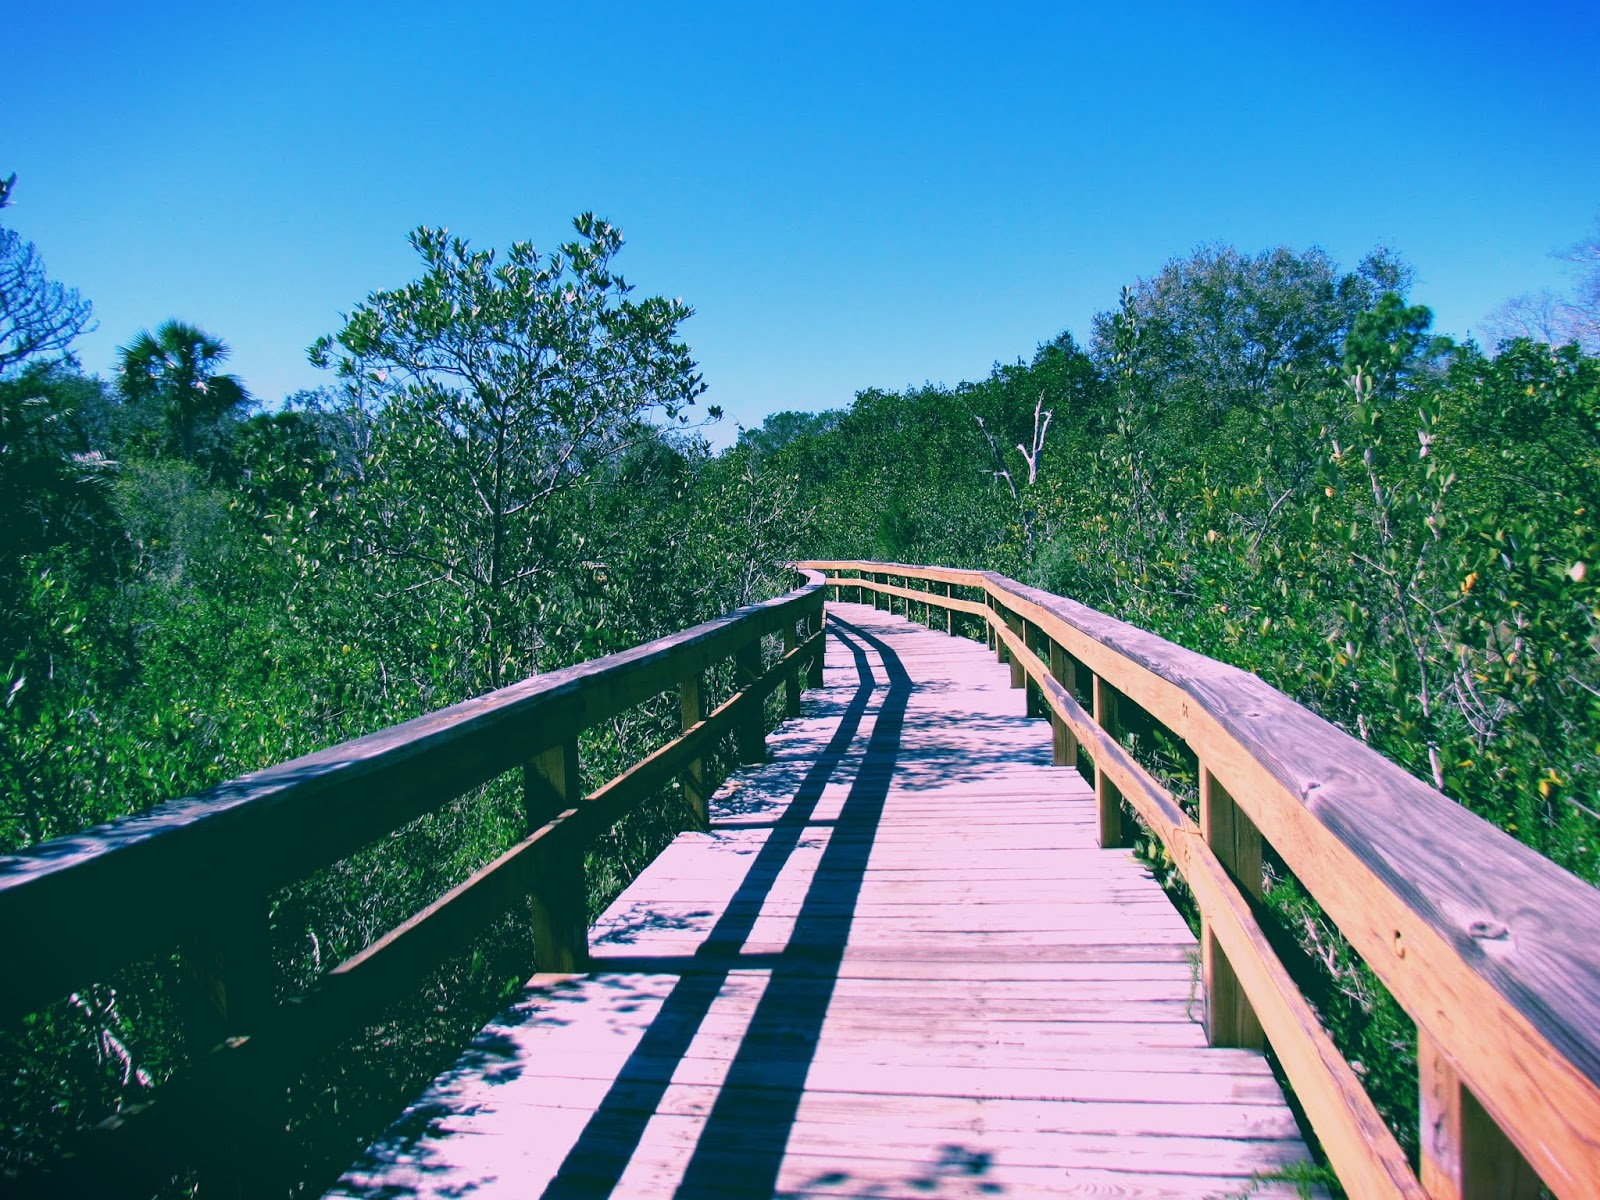 A Bridge in Hammock Park in Dunedin, Florida in the Park and Nature Preserve